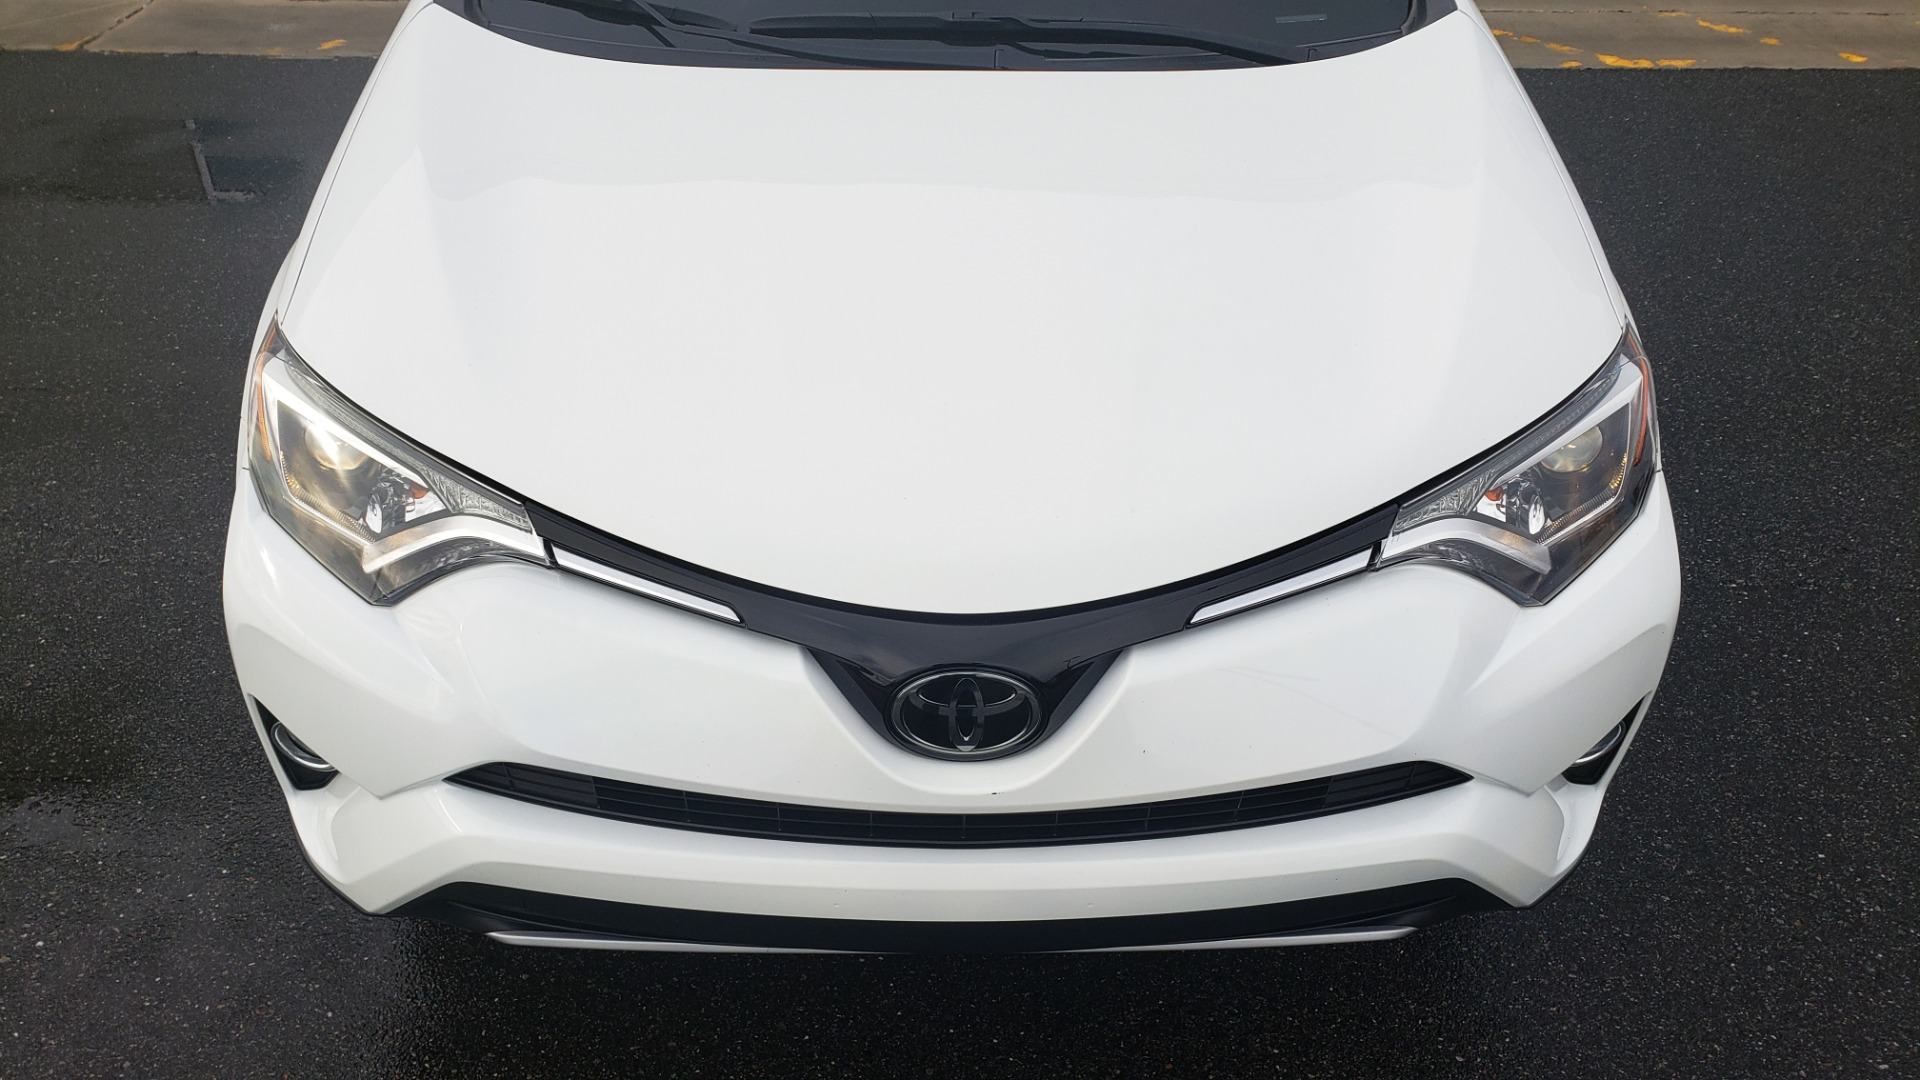 Used 2018 Toyota RAV4 XLE / FWD / 4-CYL / 6-SPD AUTO / BSM / REAR CROSS TRAFFIC ALERT for sale Sold at Formula Imports in Charlotte NC 28227 23